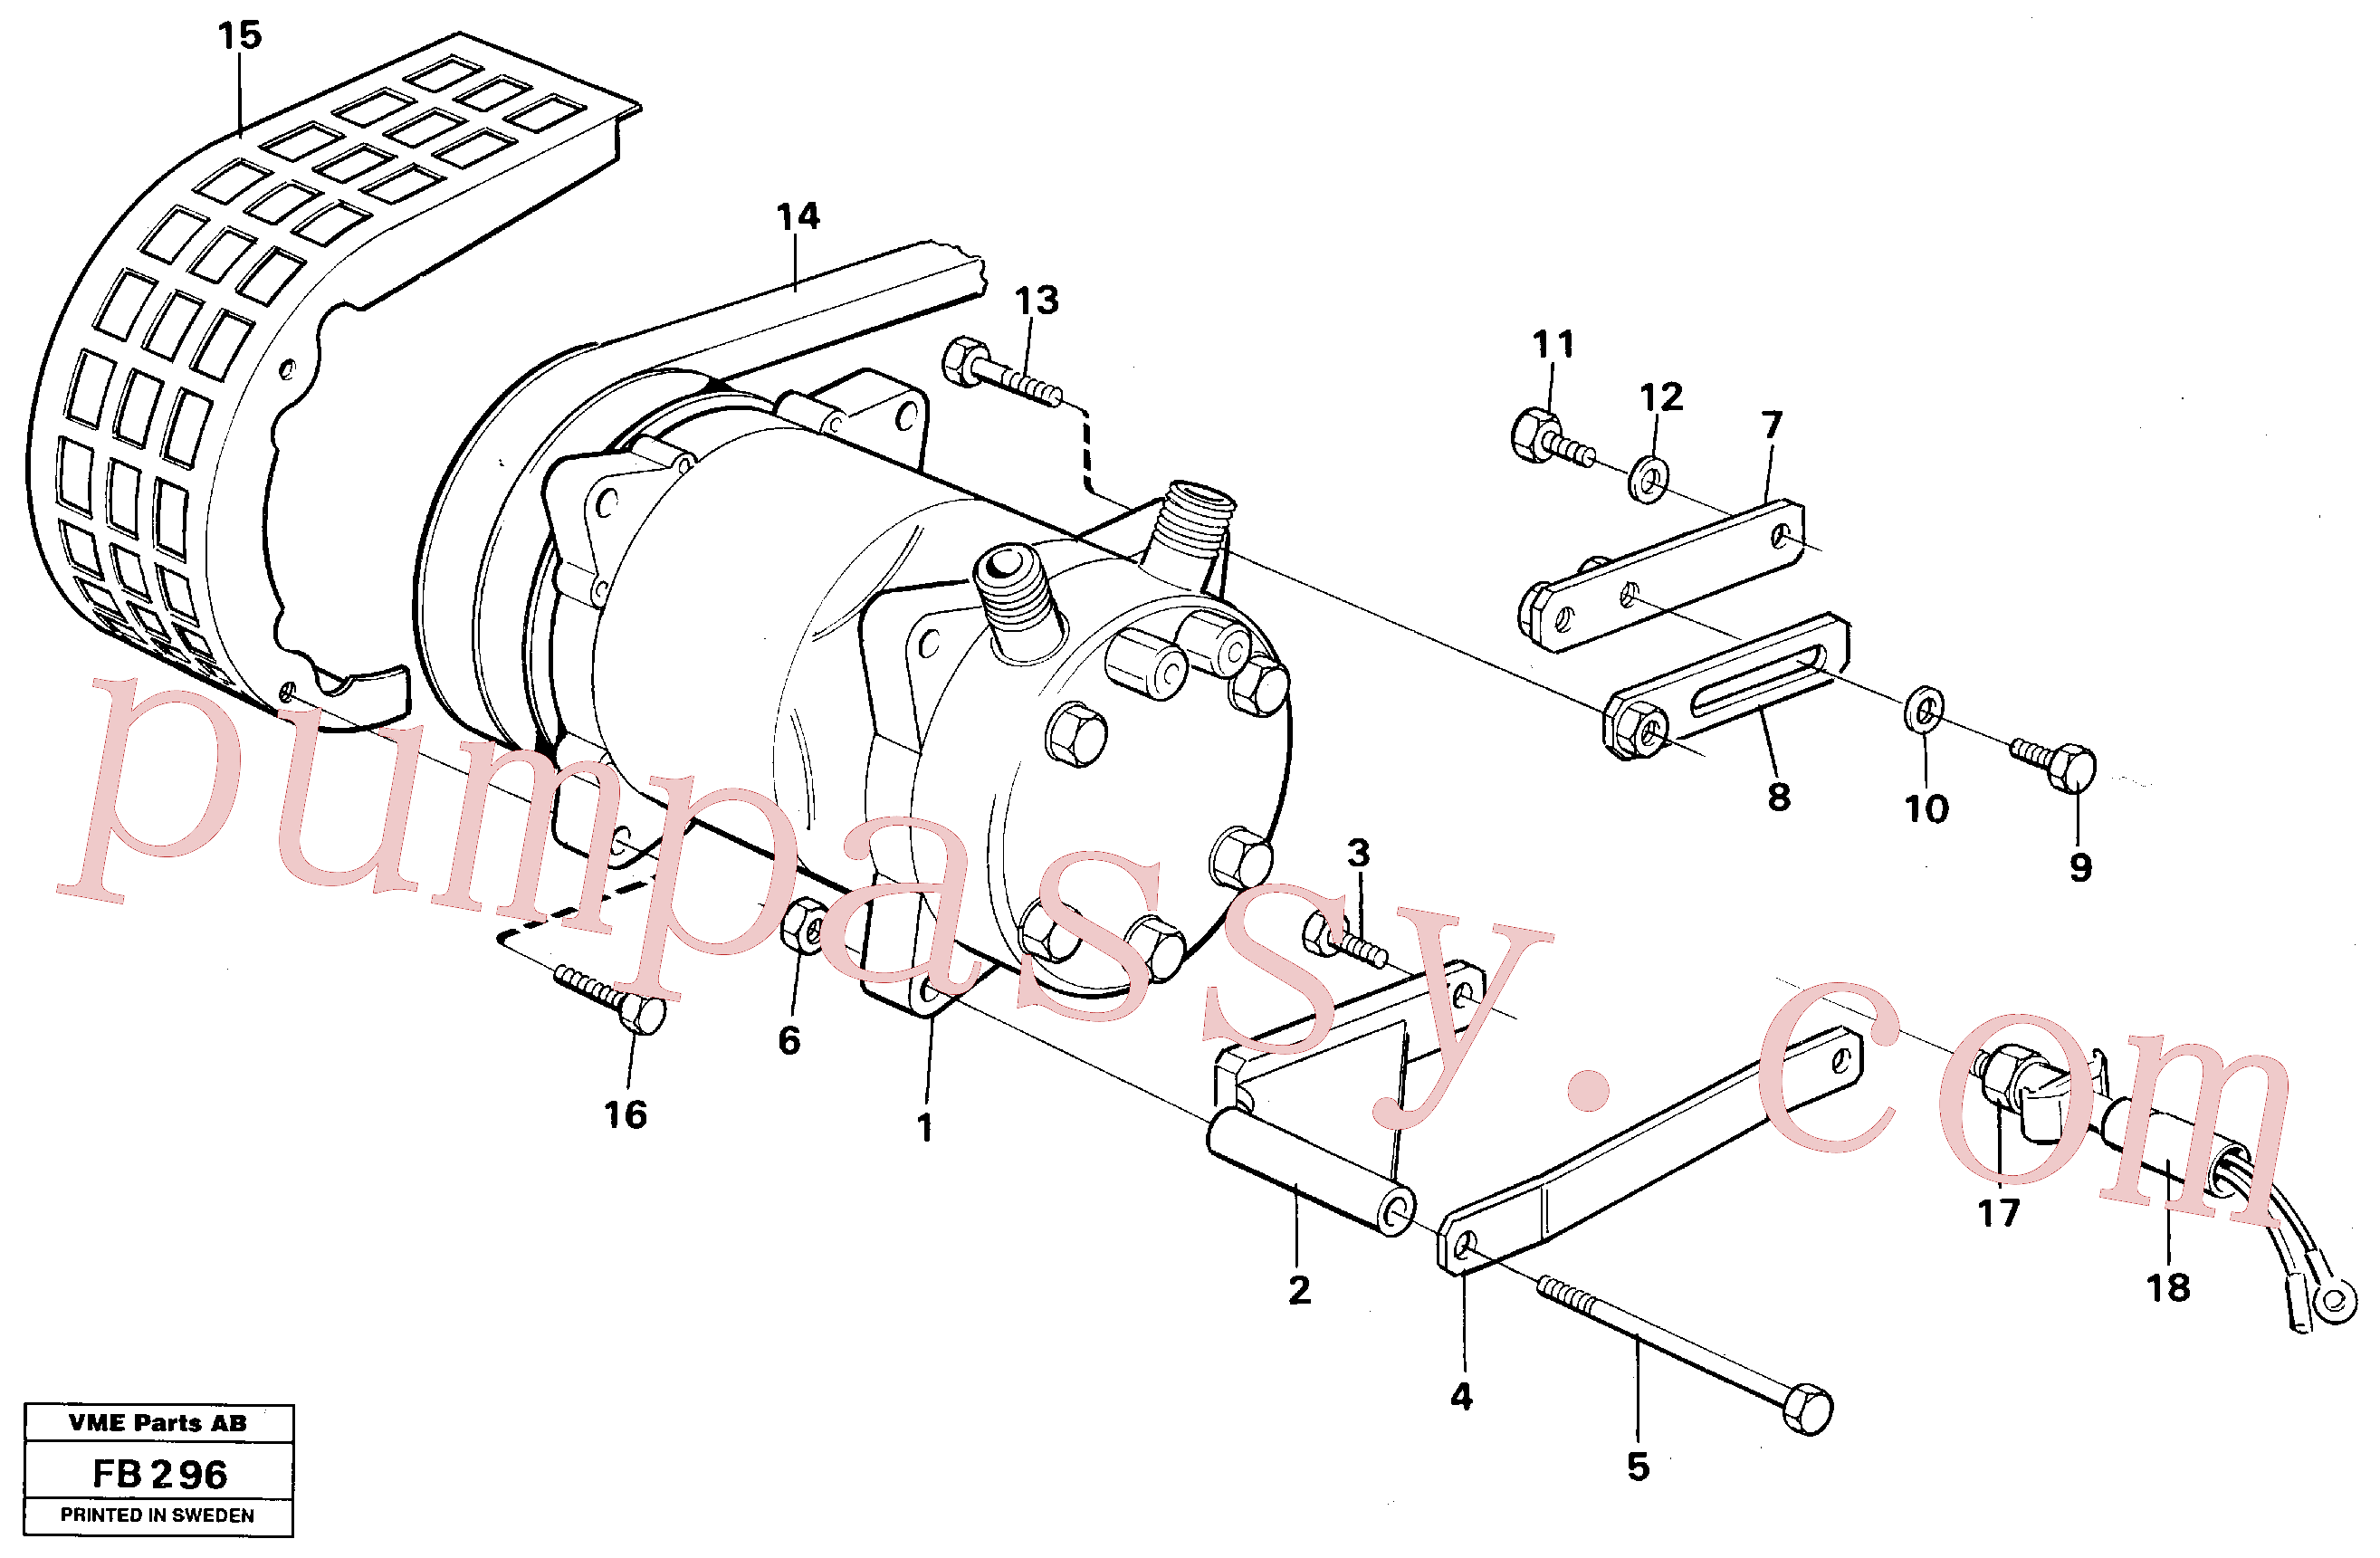 VOE14249723 for Volvo Compressor with fitting parts Cooling agent R12(FB296 assembly)